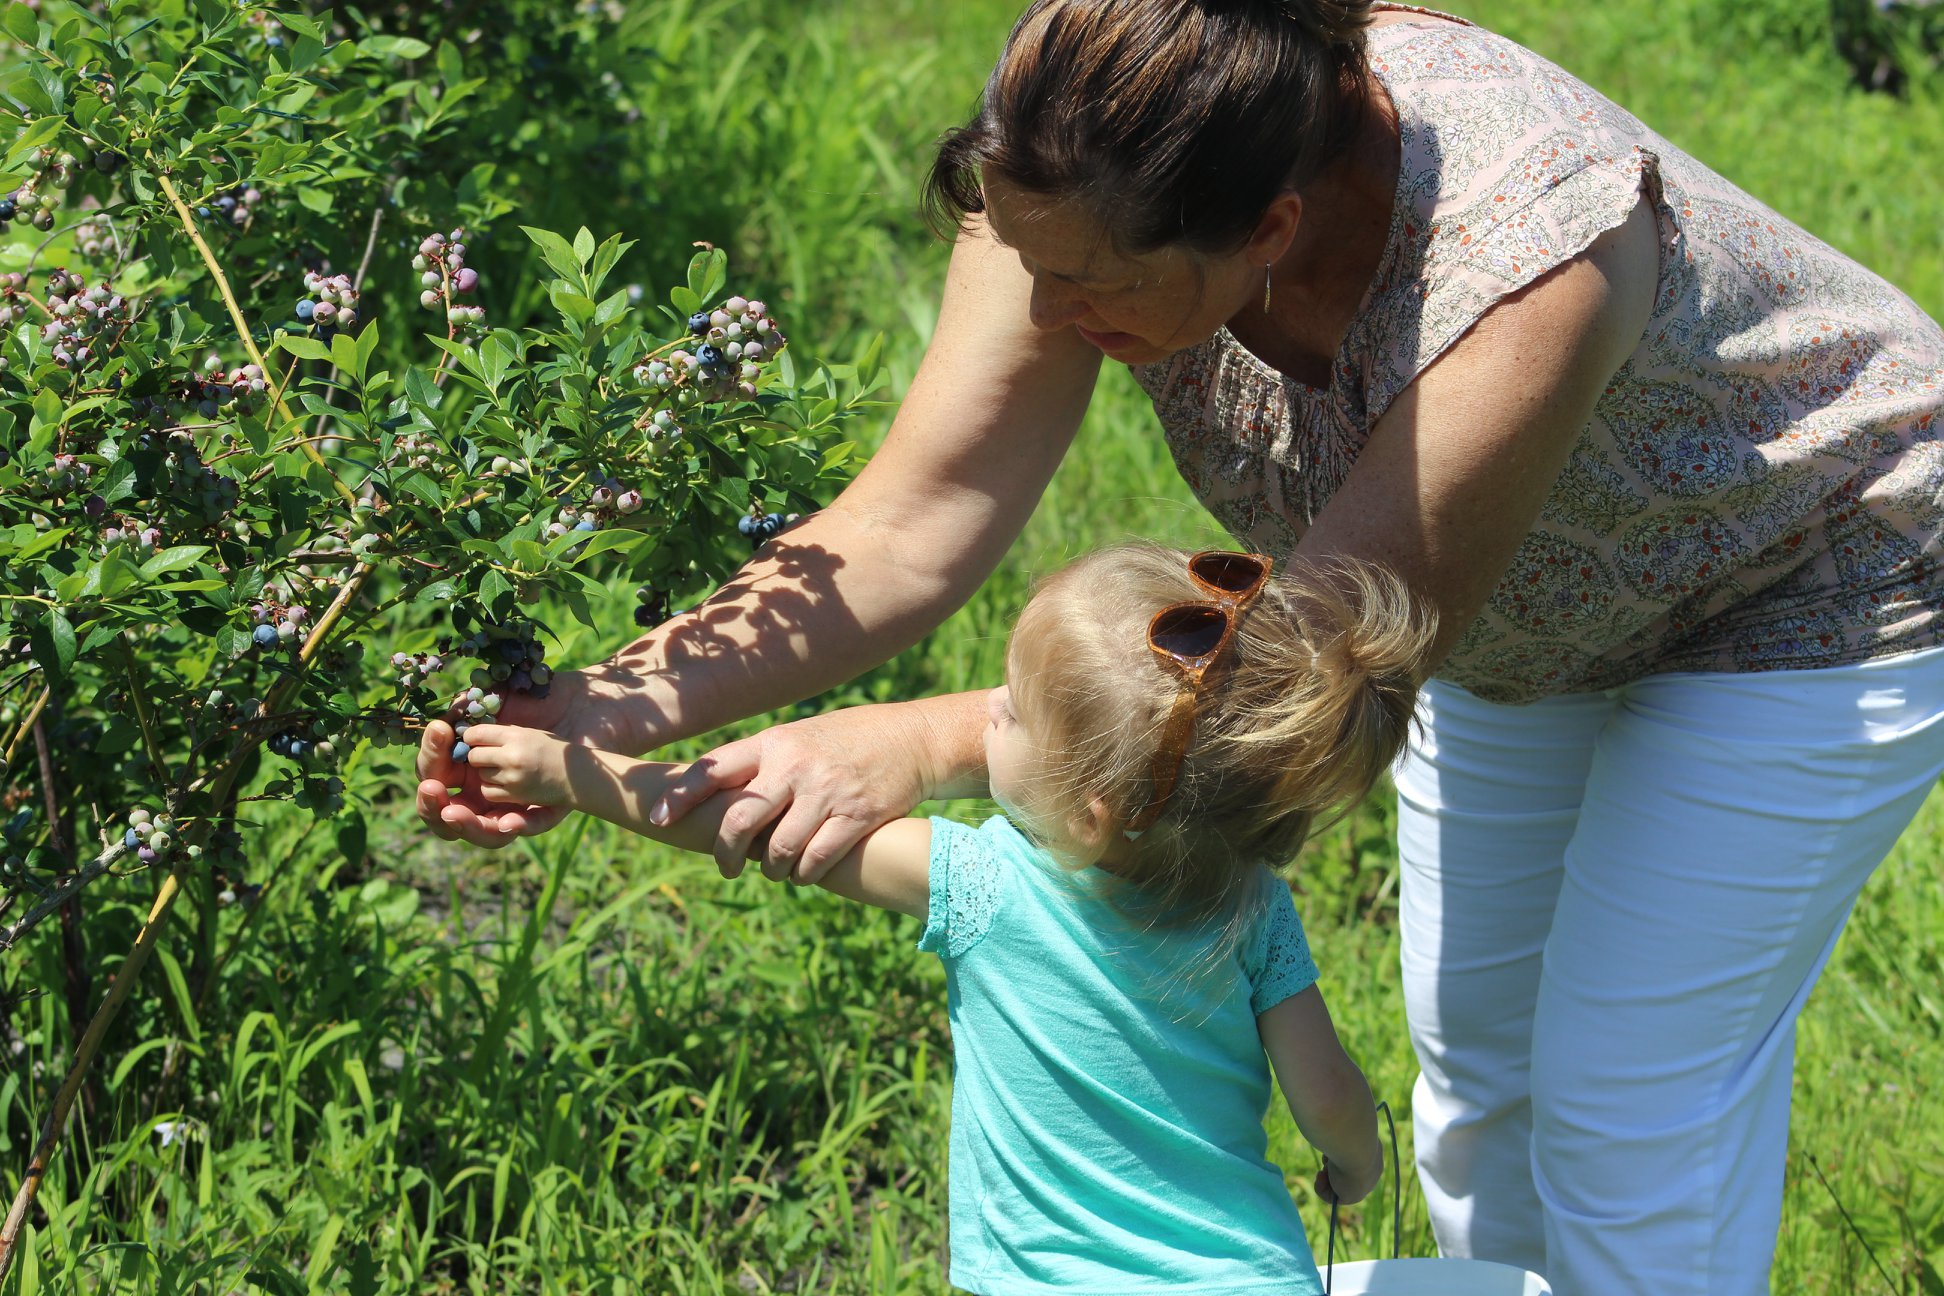 Mother and child pick blueberries